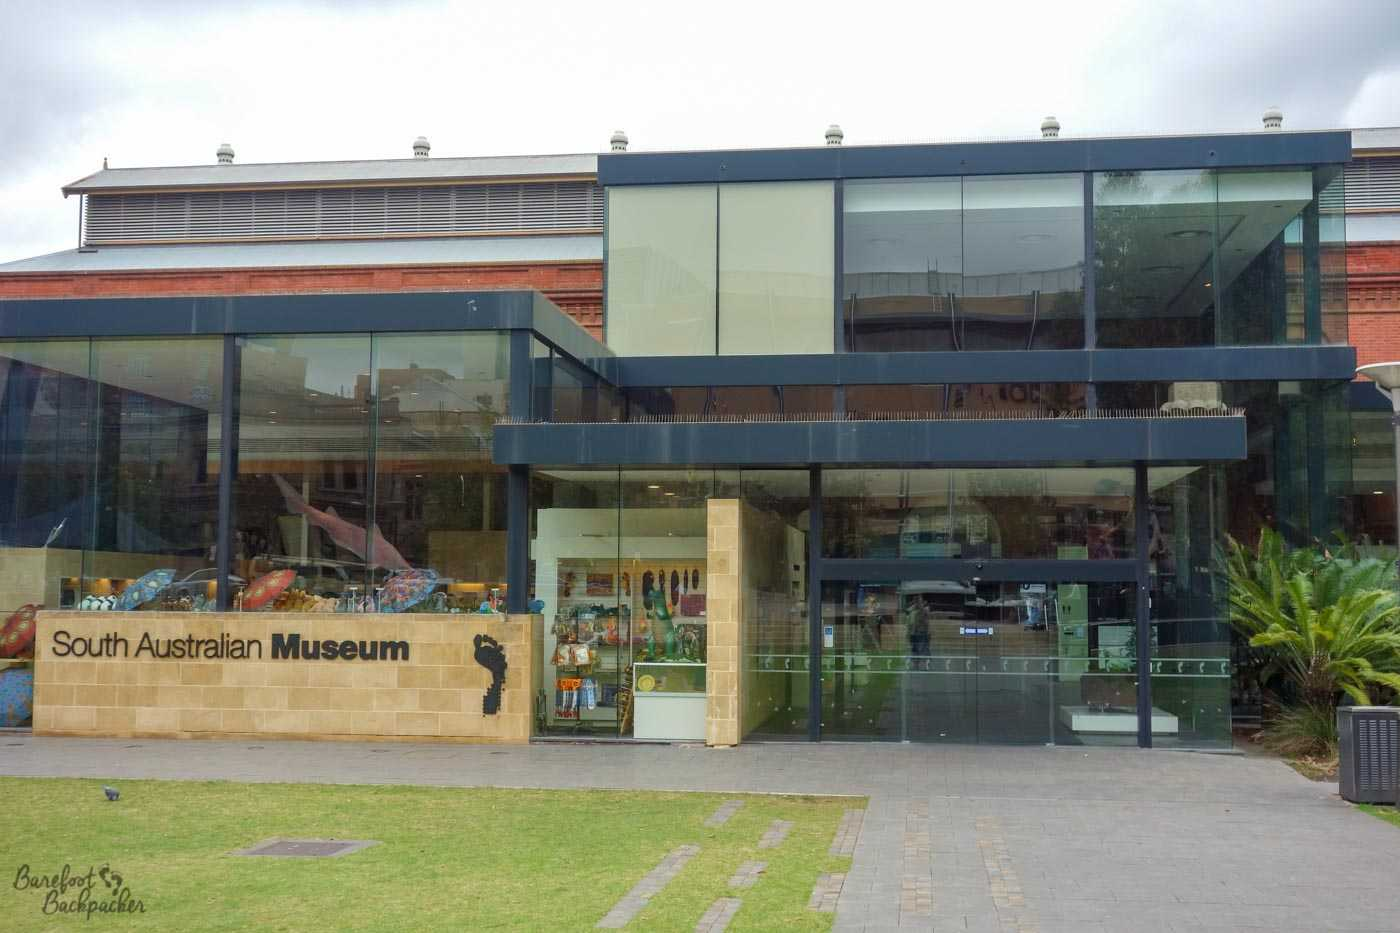 This is a picture of the frontage of the South Australian Museum. I'm including it to show what it looks like, and to break up the text a bit – it's not a terribly interesting image as the frontage of museums rarely are.